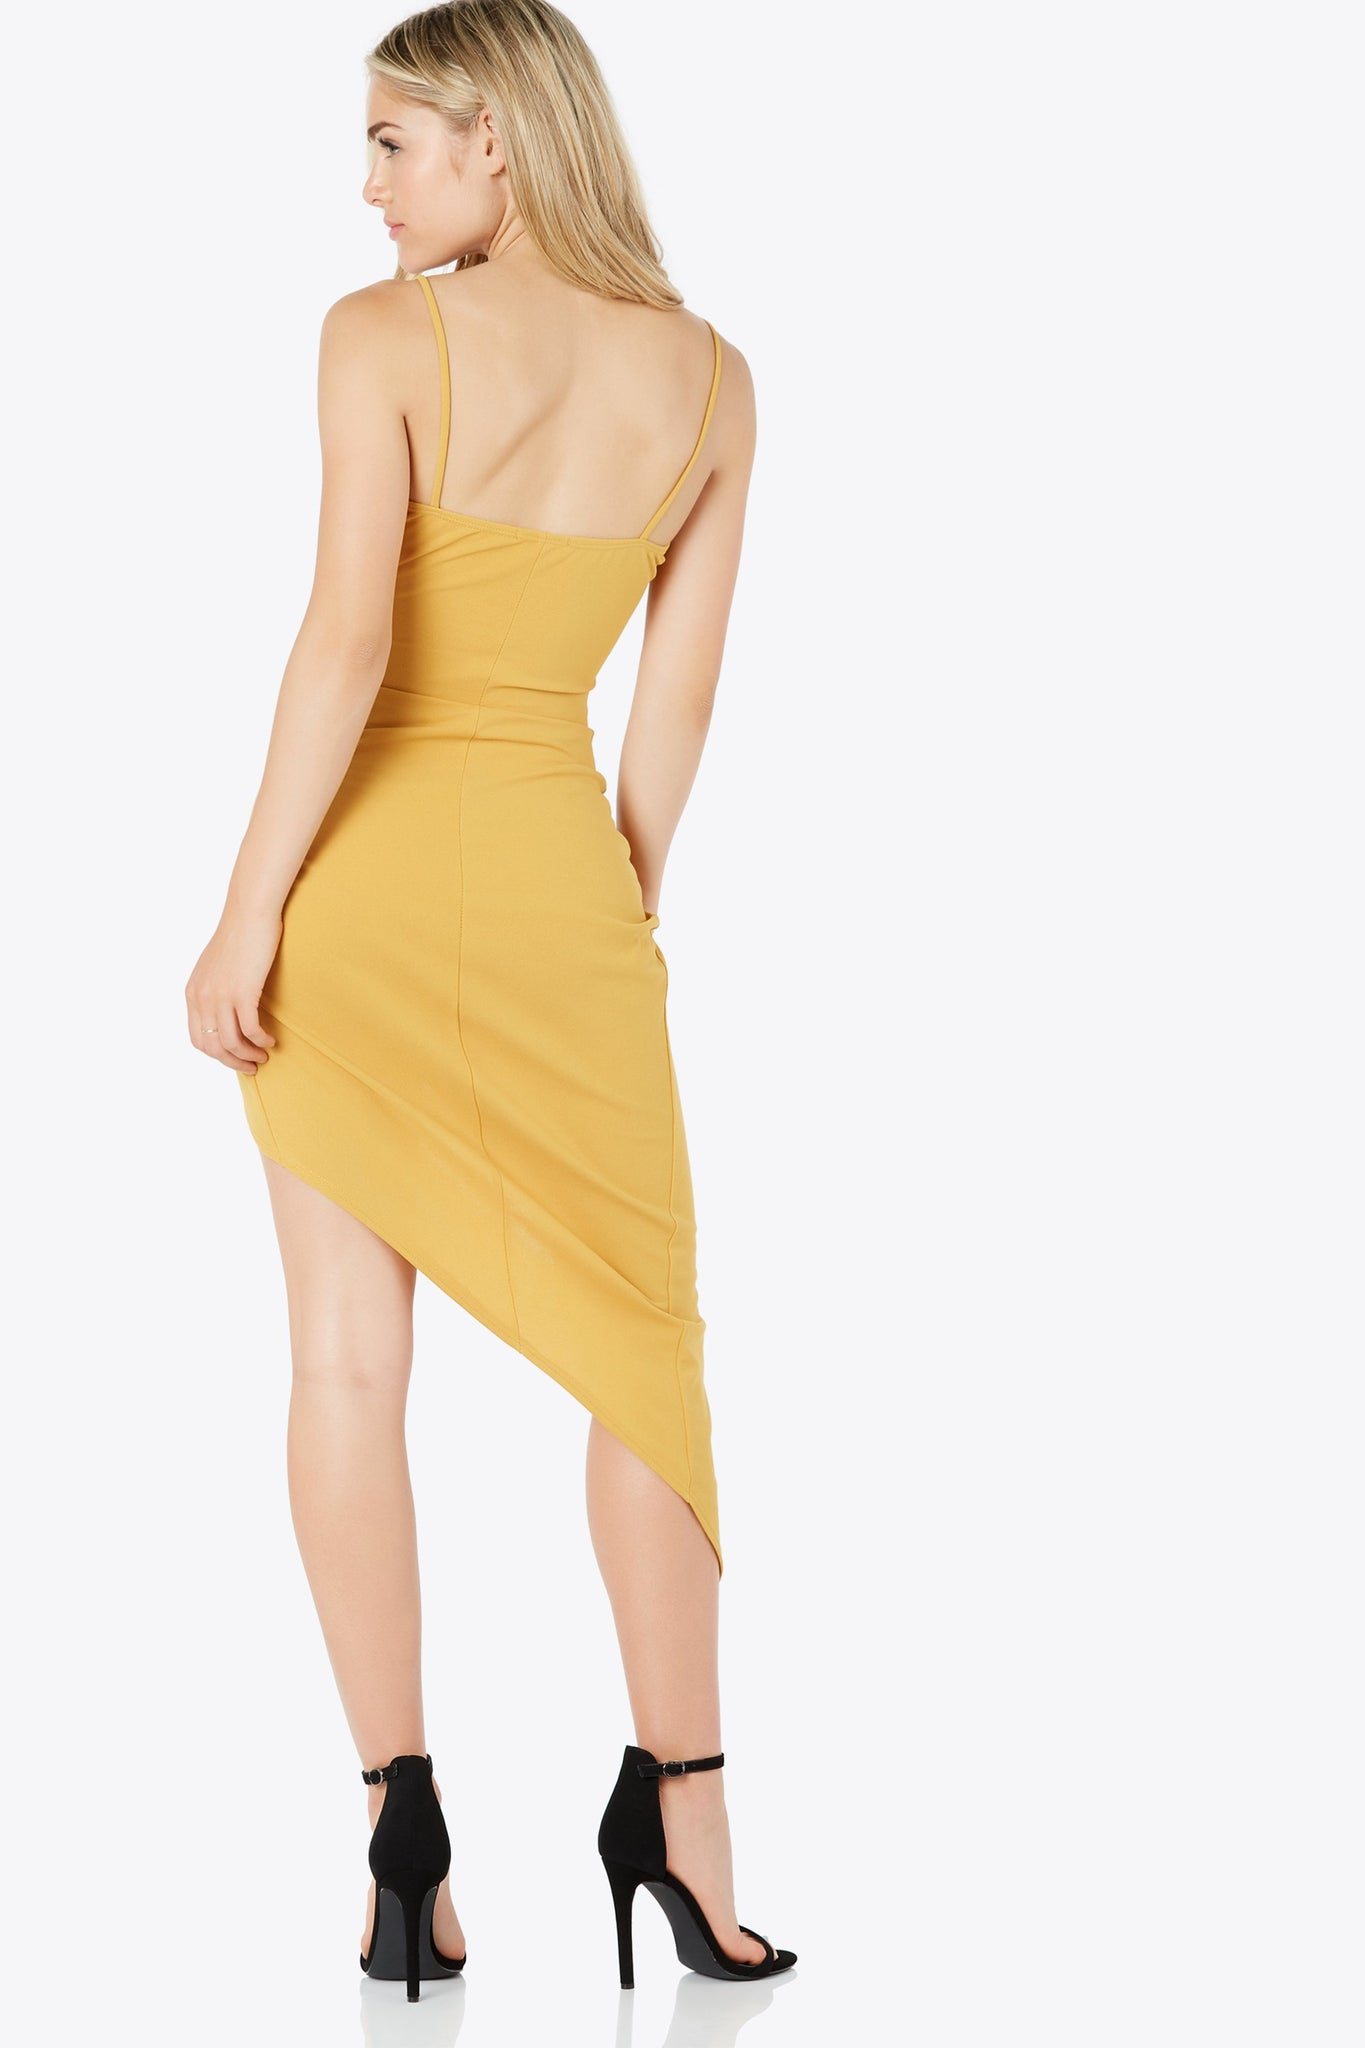 Feel This Way Asymmetrical Dress